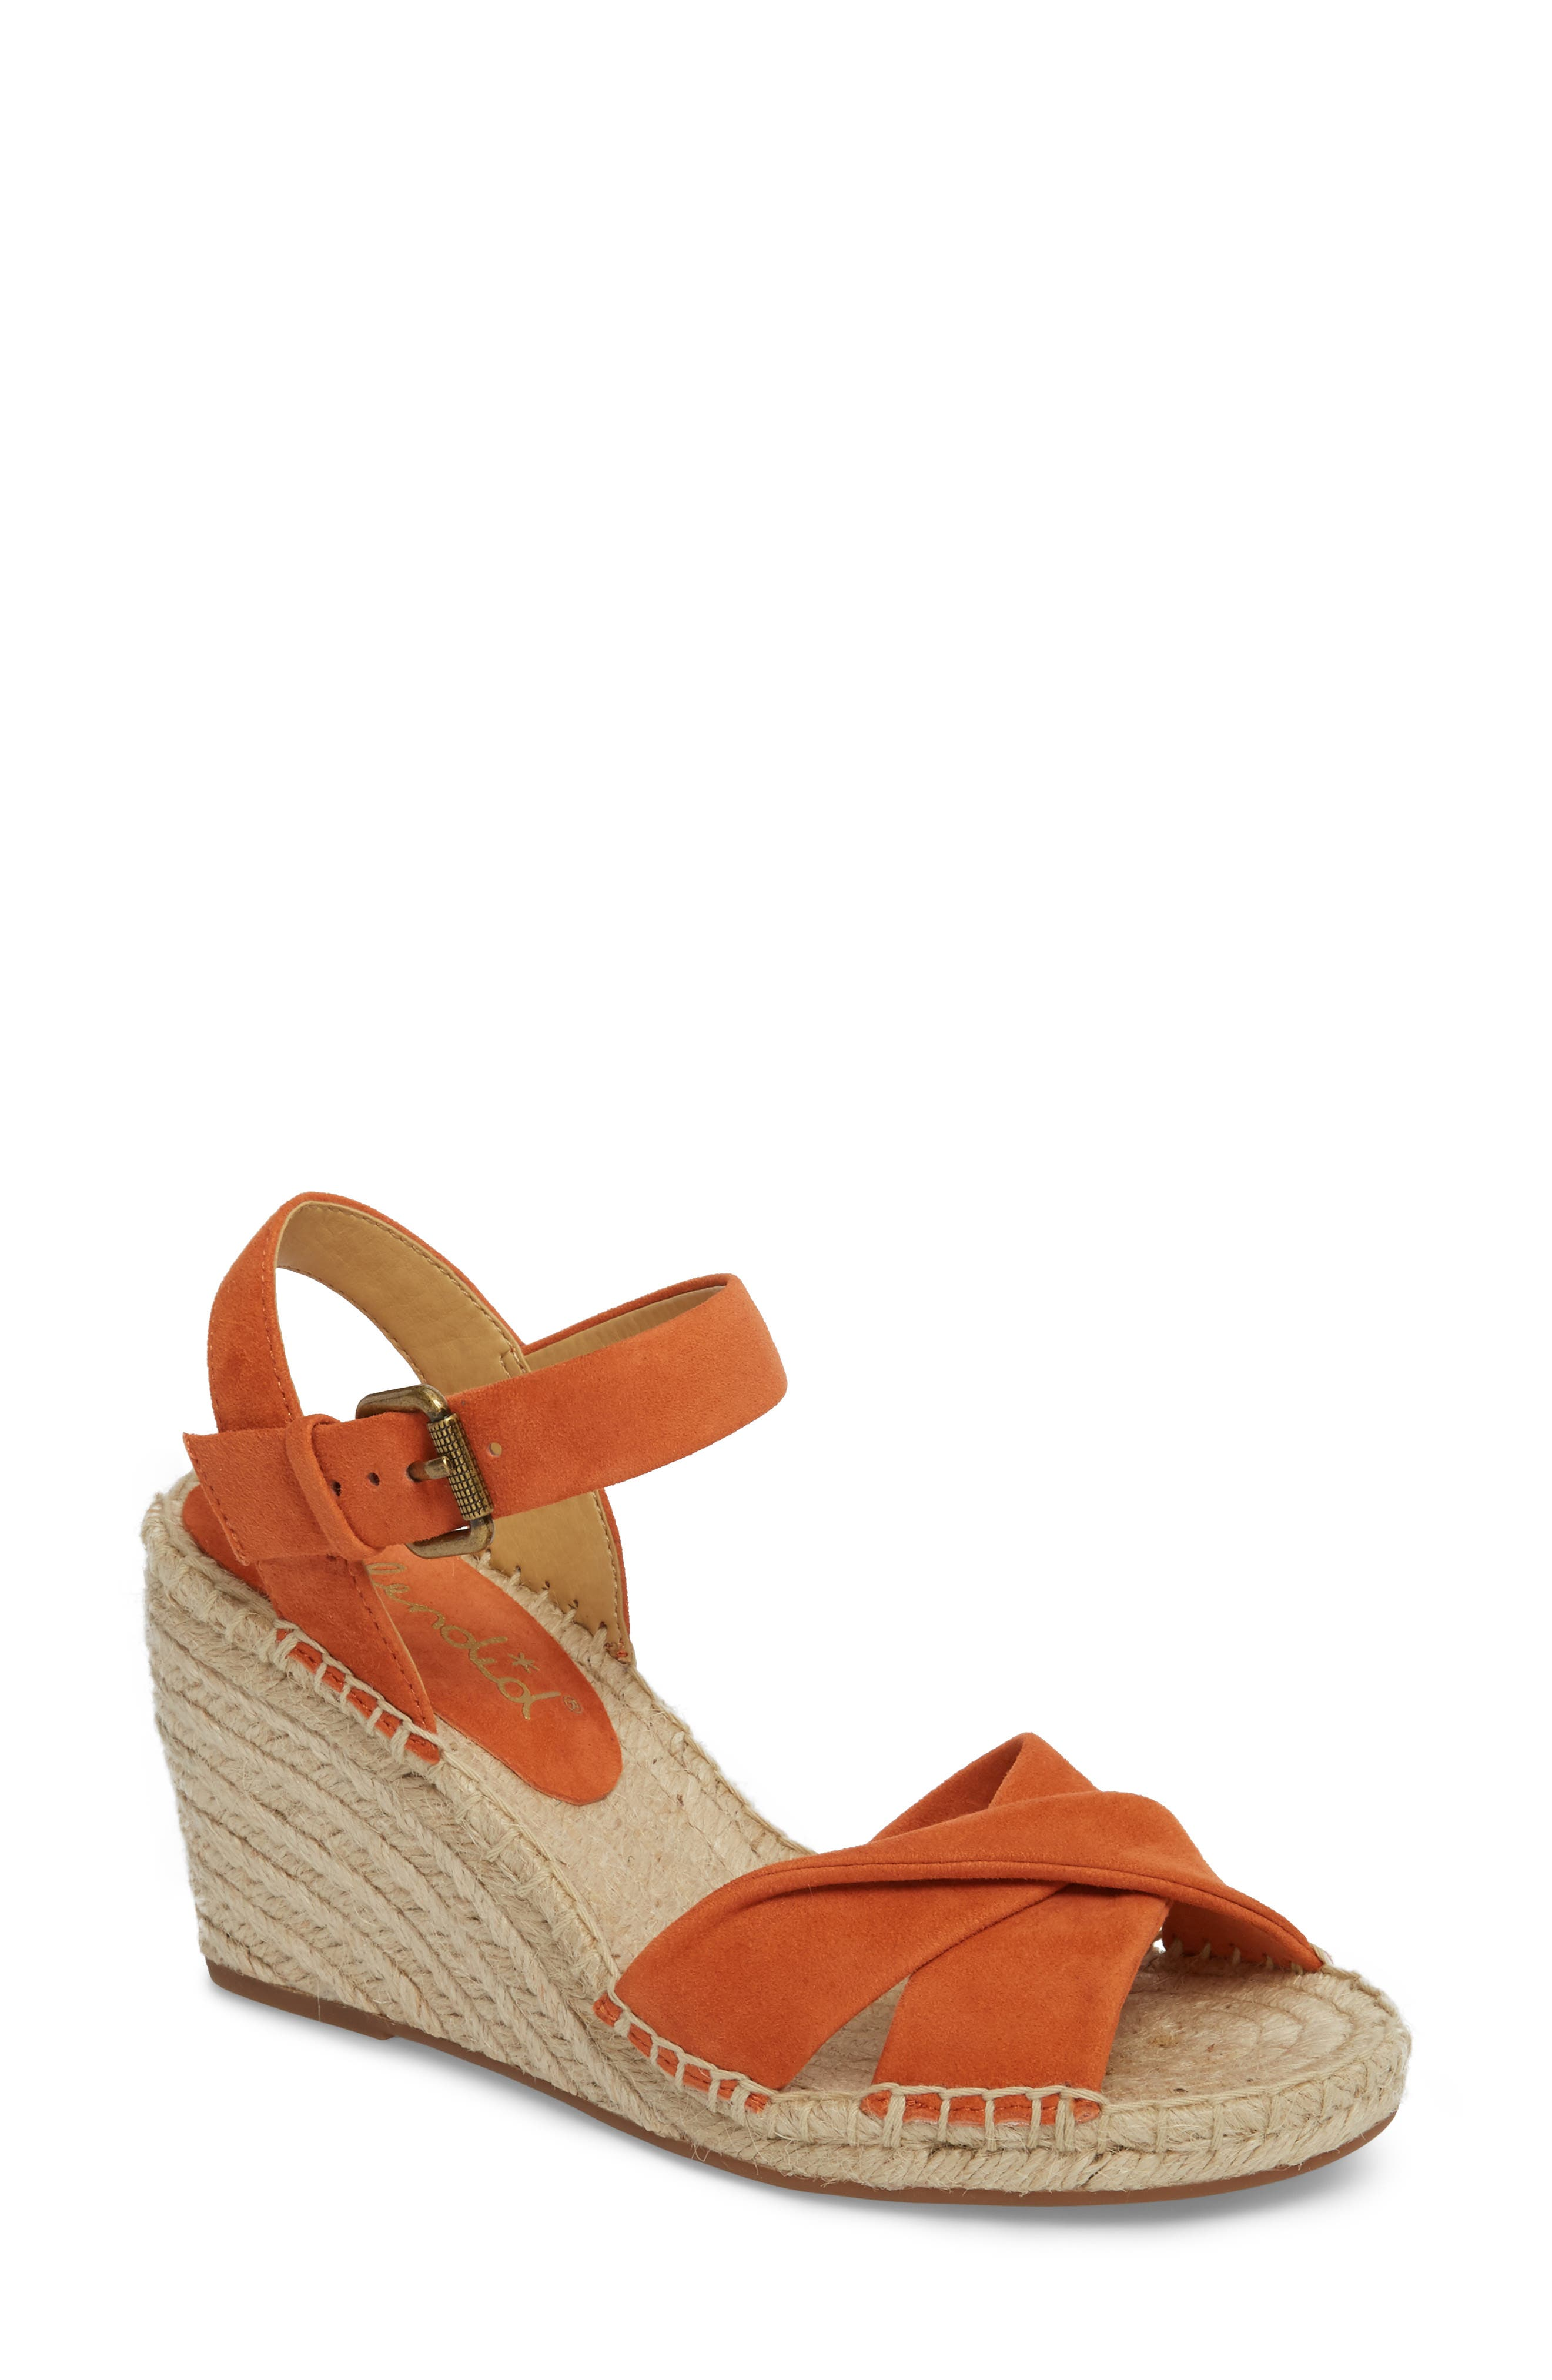 5bdcd41d02dc Splendid Fairfax Espadrille Wedge Sandal In Coral Suede